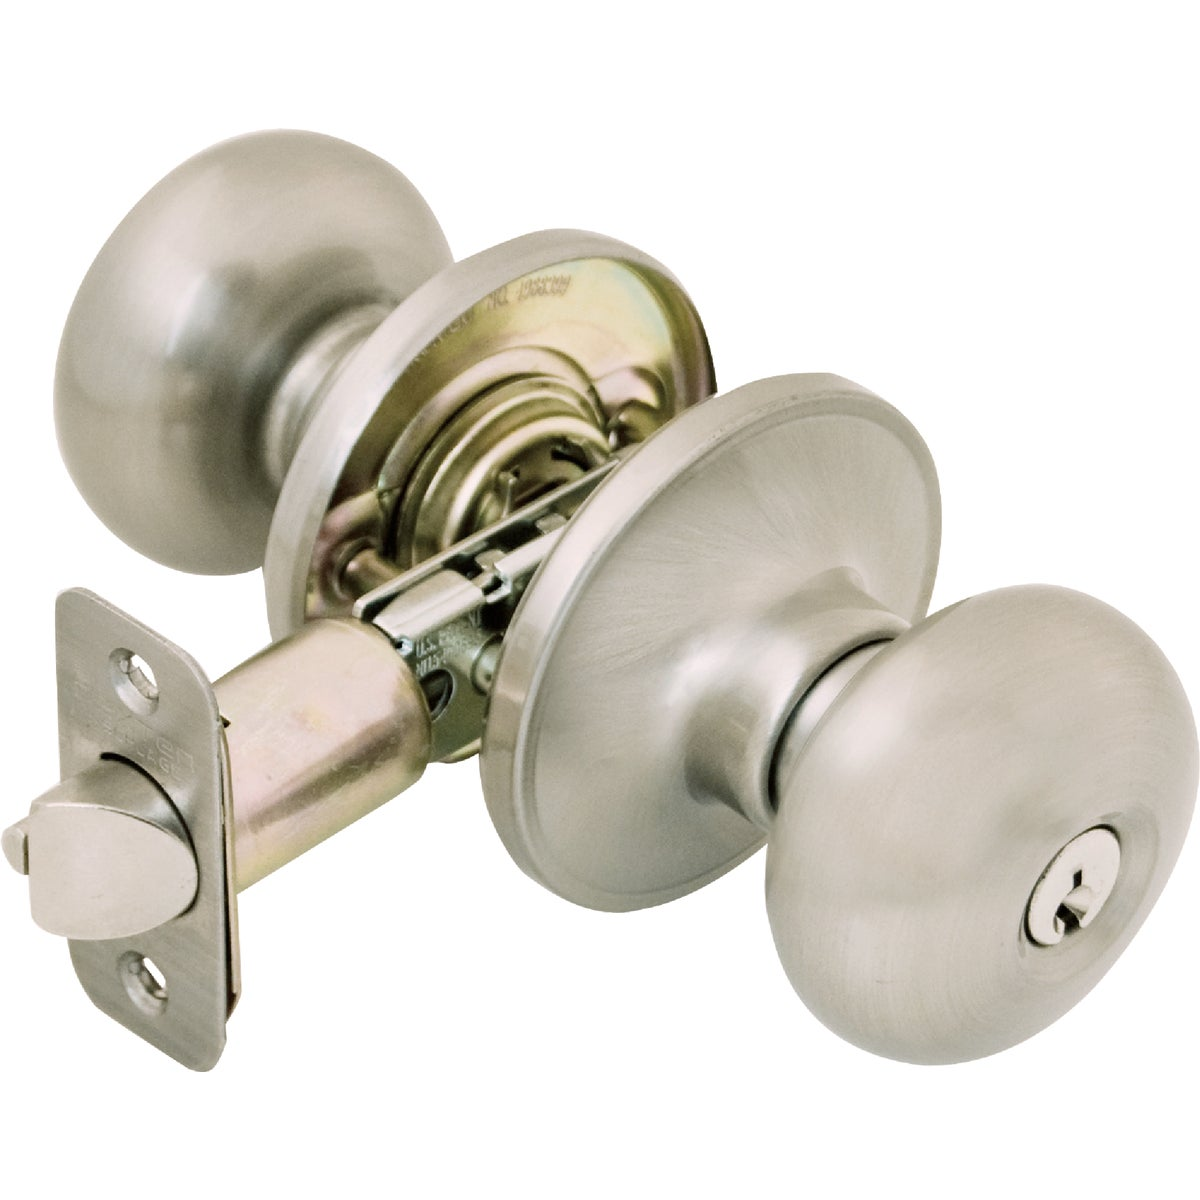 SN STRATUS ENTRY LOCK - J54VSTR619 by Schlage Lock Co